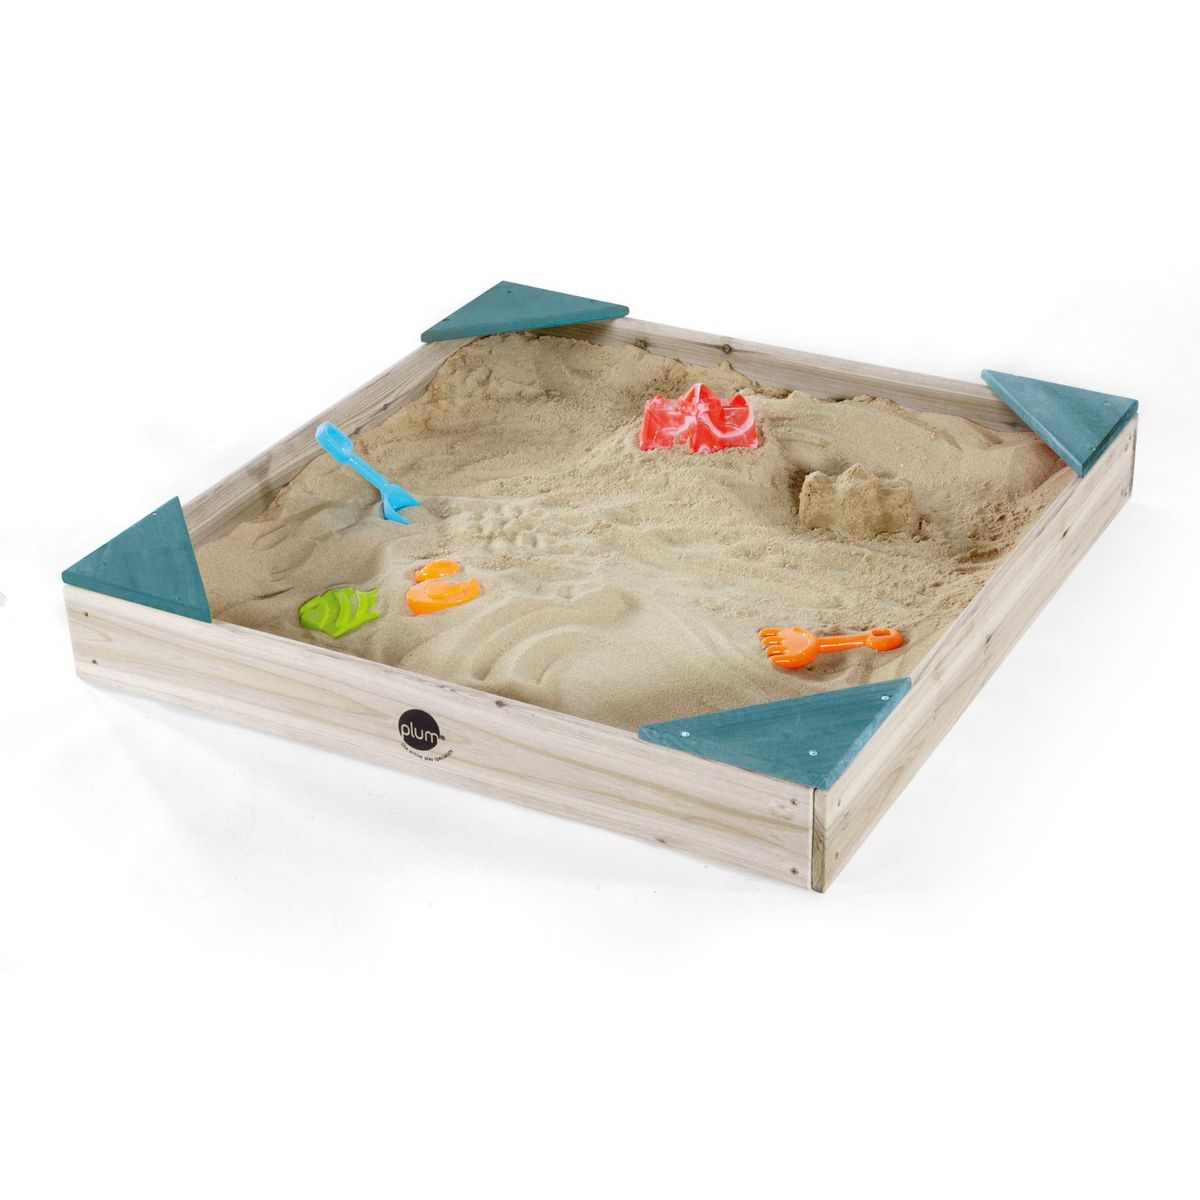 Square Wooden Sandpit - Teal by Plum Play